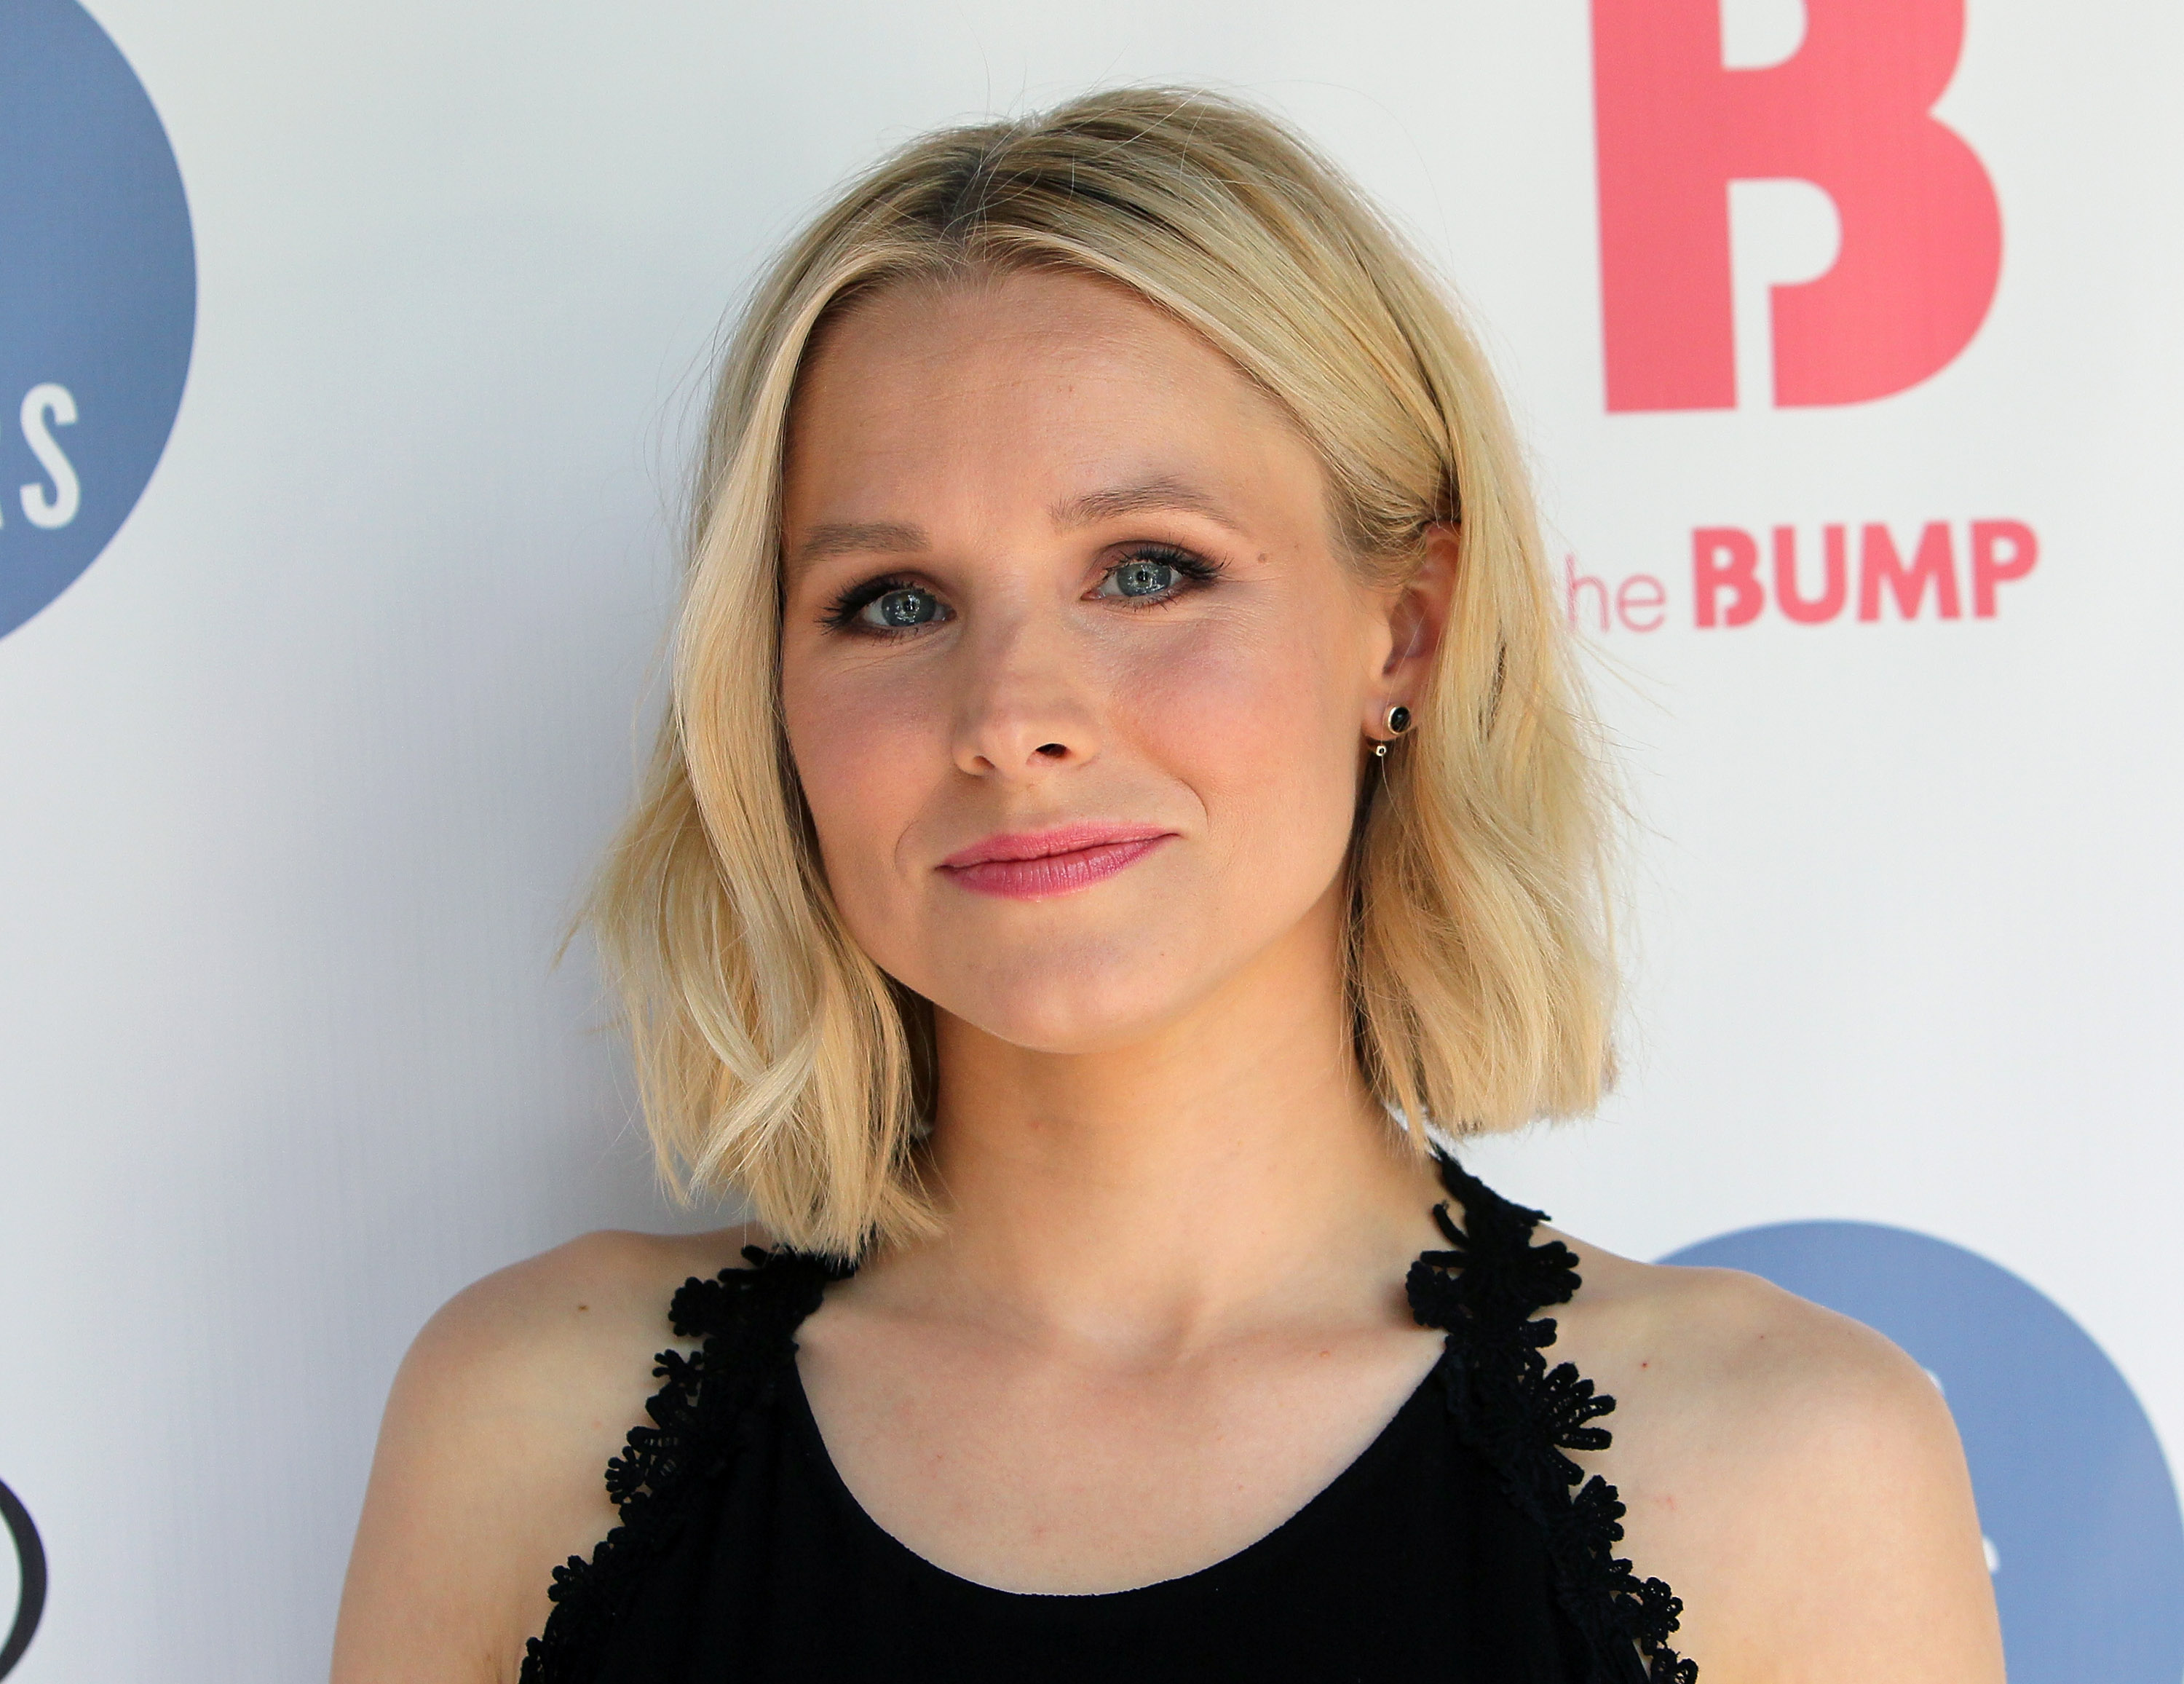 Actress Kristen Bell attends The Bump Moms: Movers and Makers Awards at The Millwick on May 3, 2016 in Los Angeles, California.